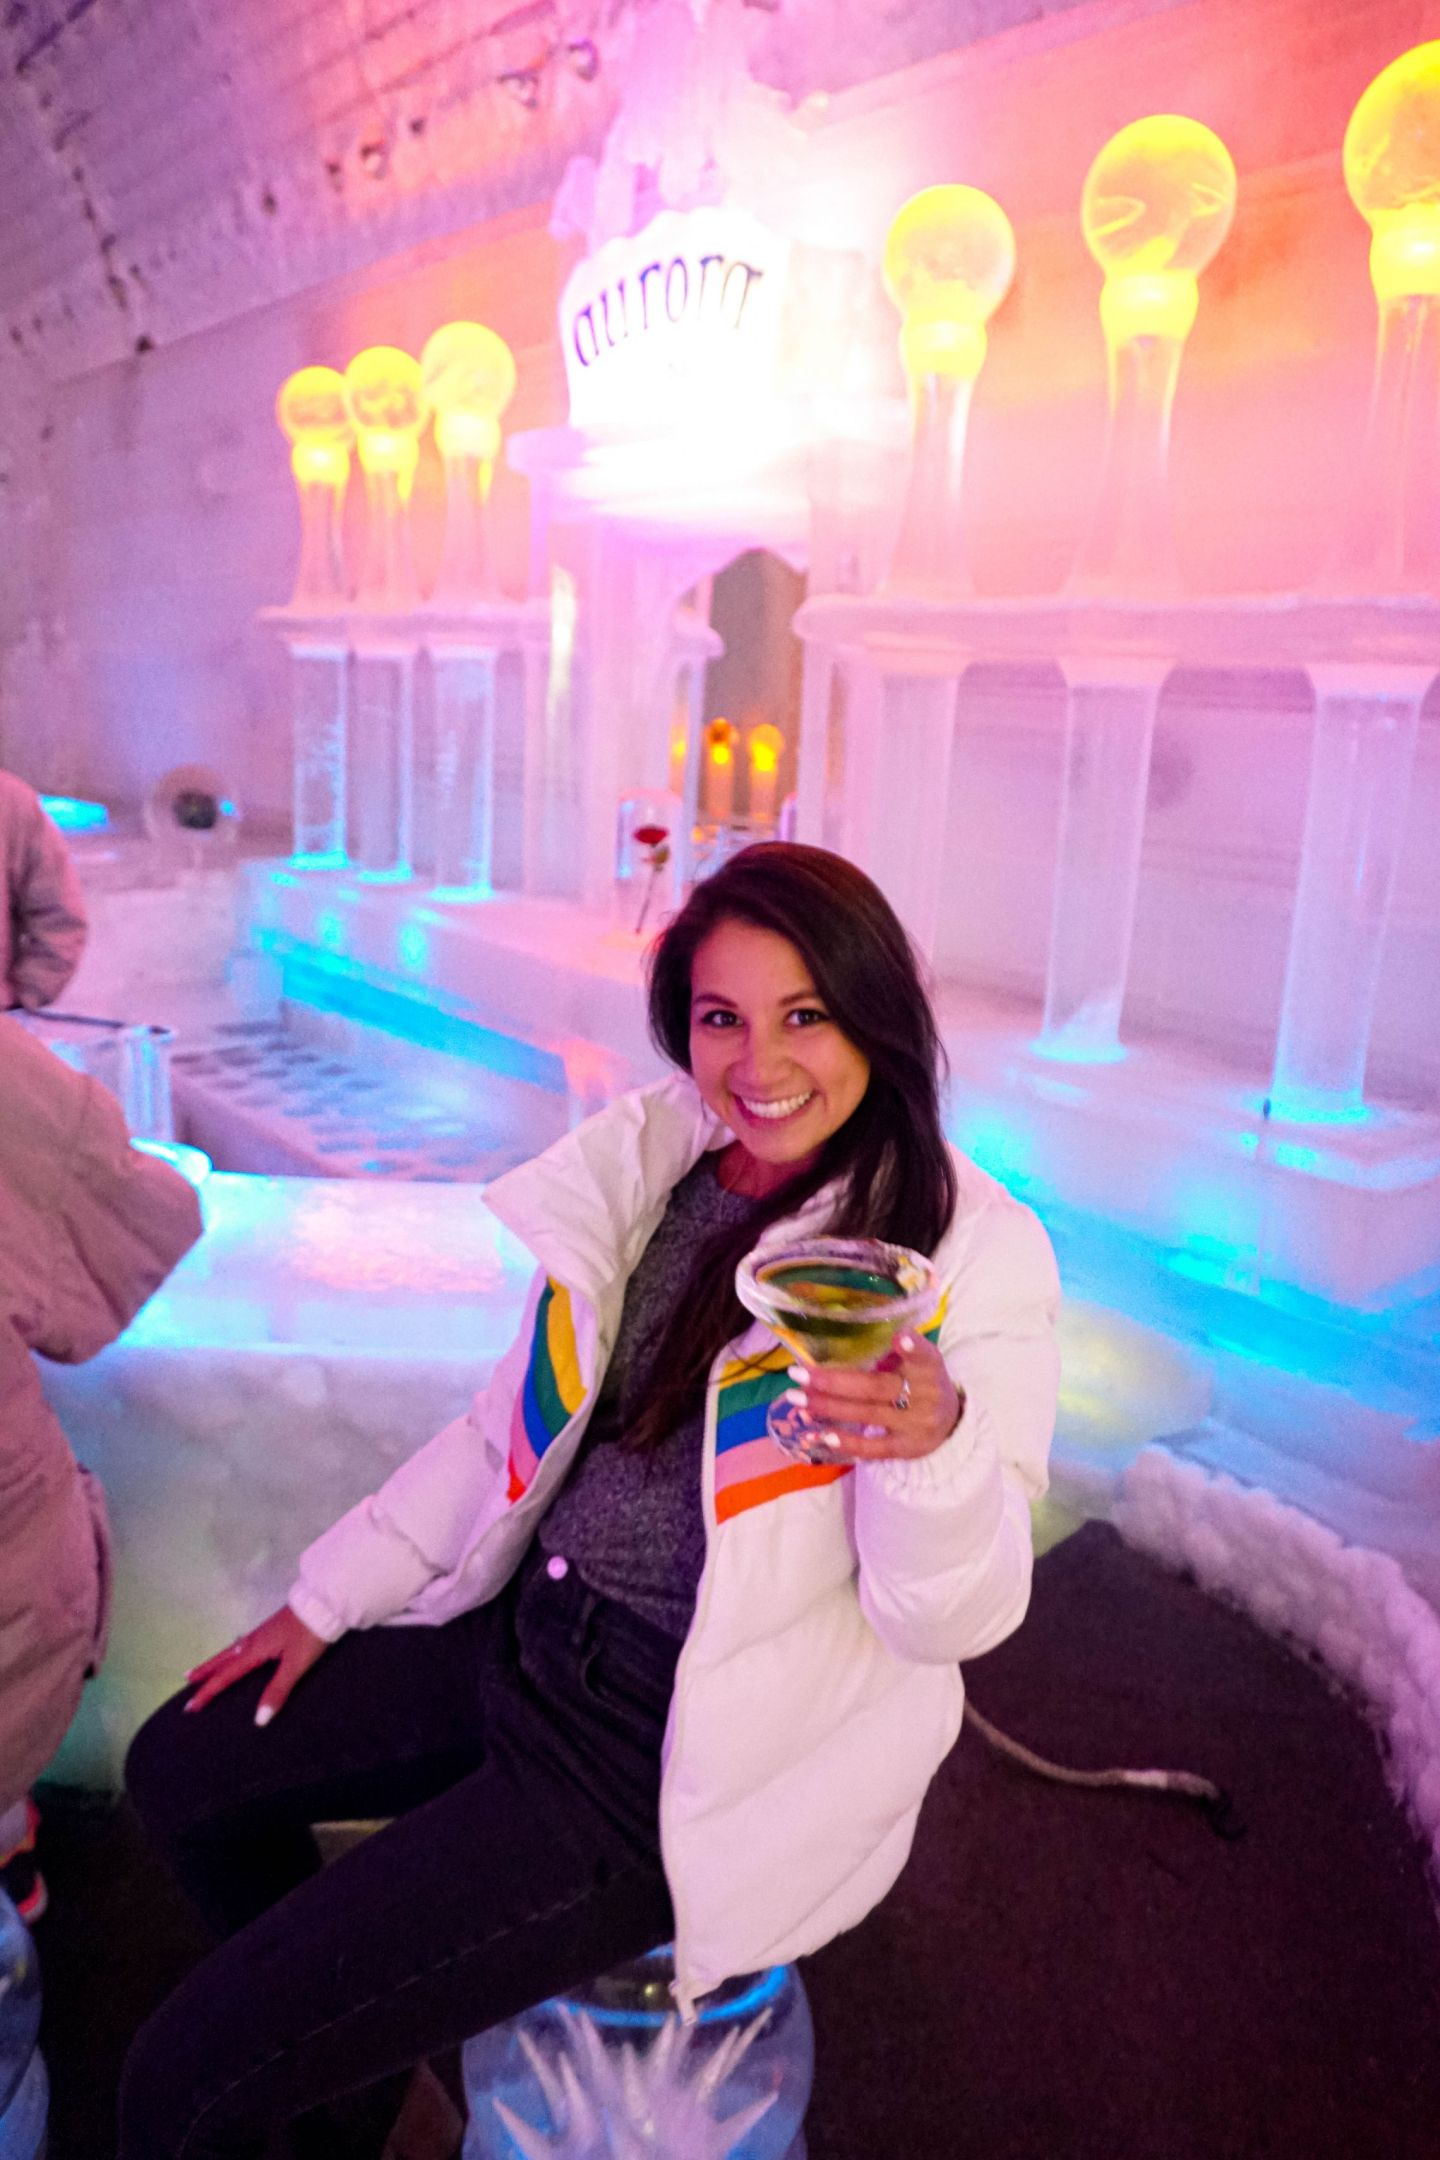 Enjoying a signature cocktail in Chena Hot Springs Resort's ice museum.